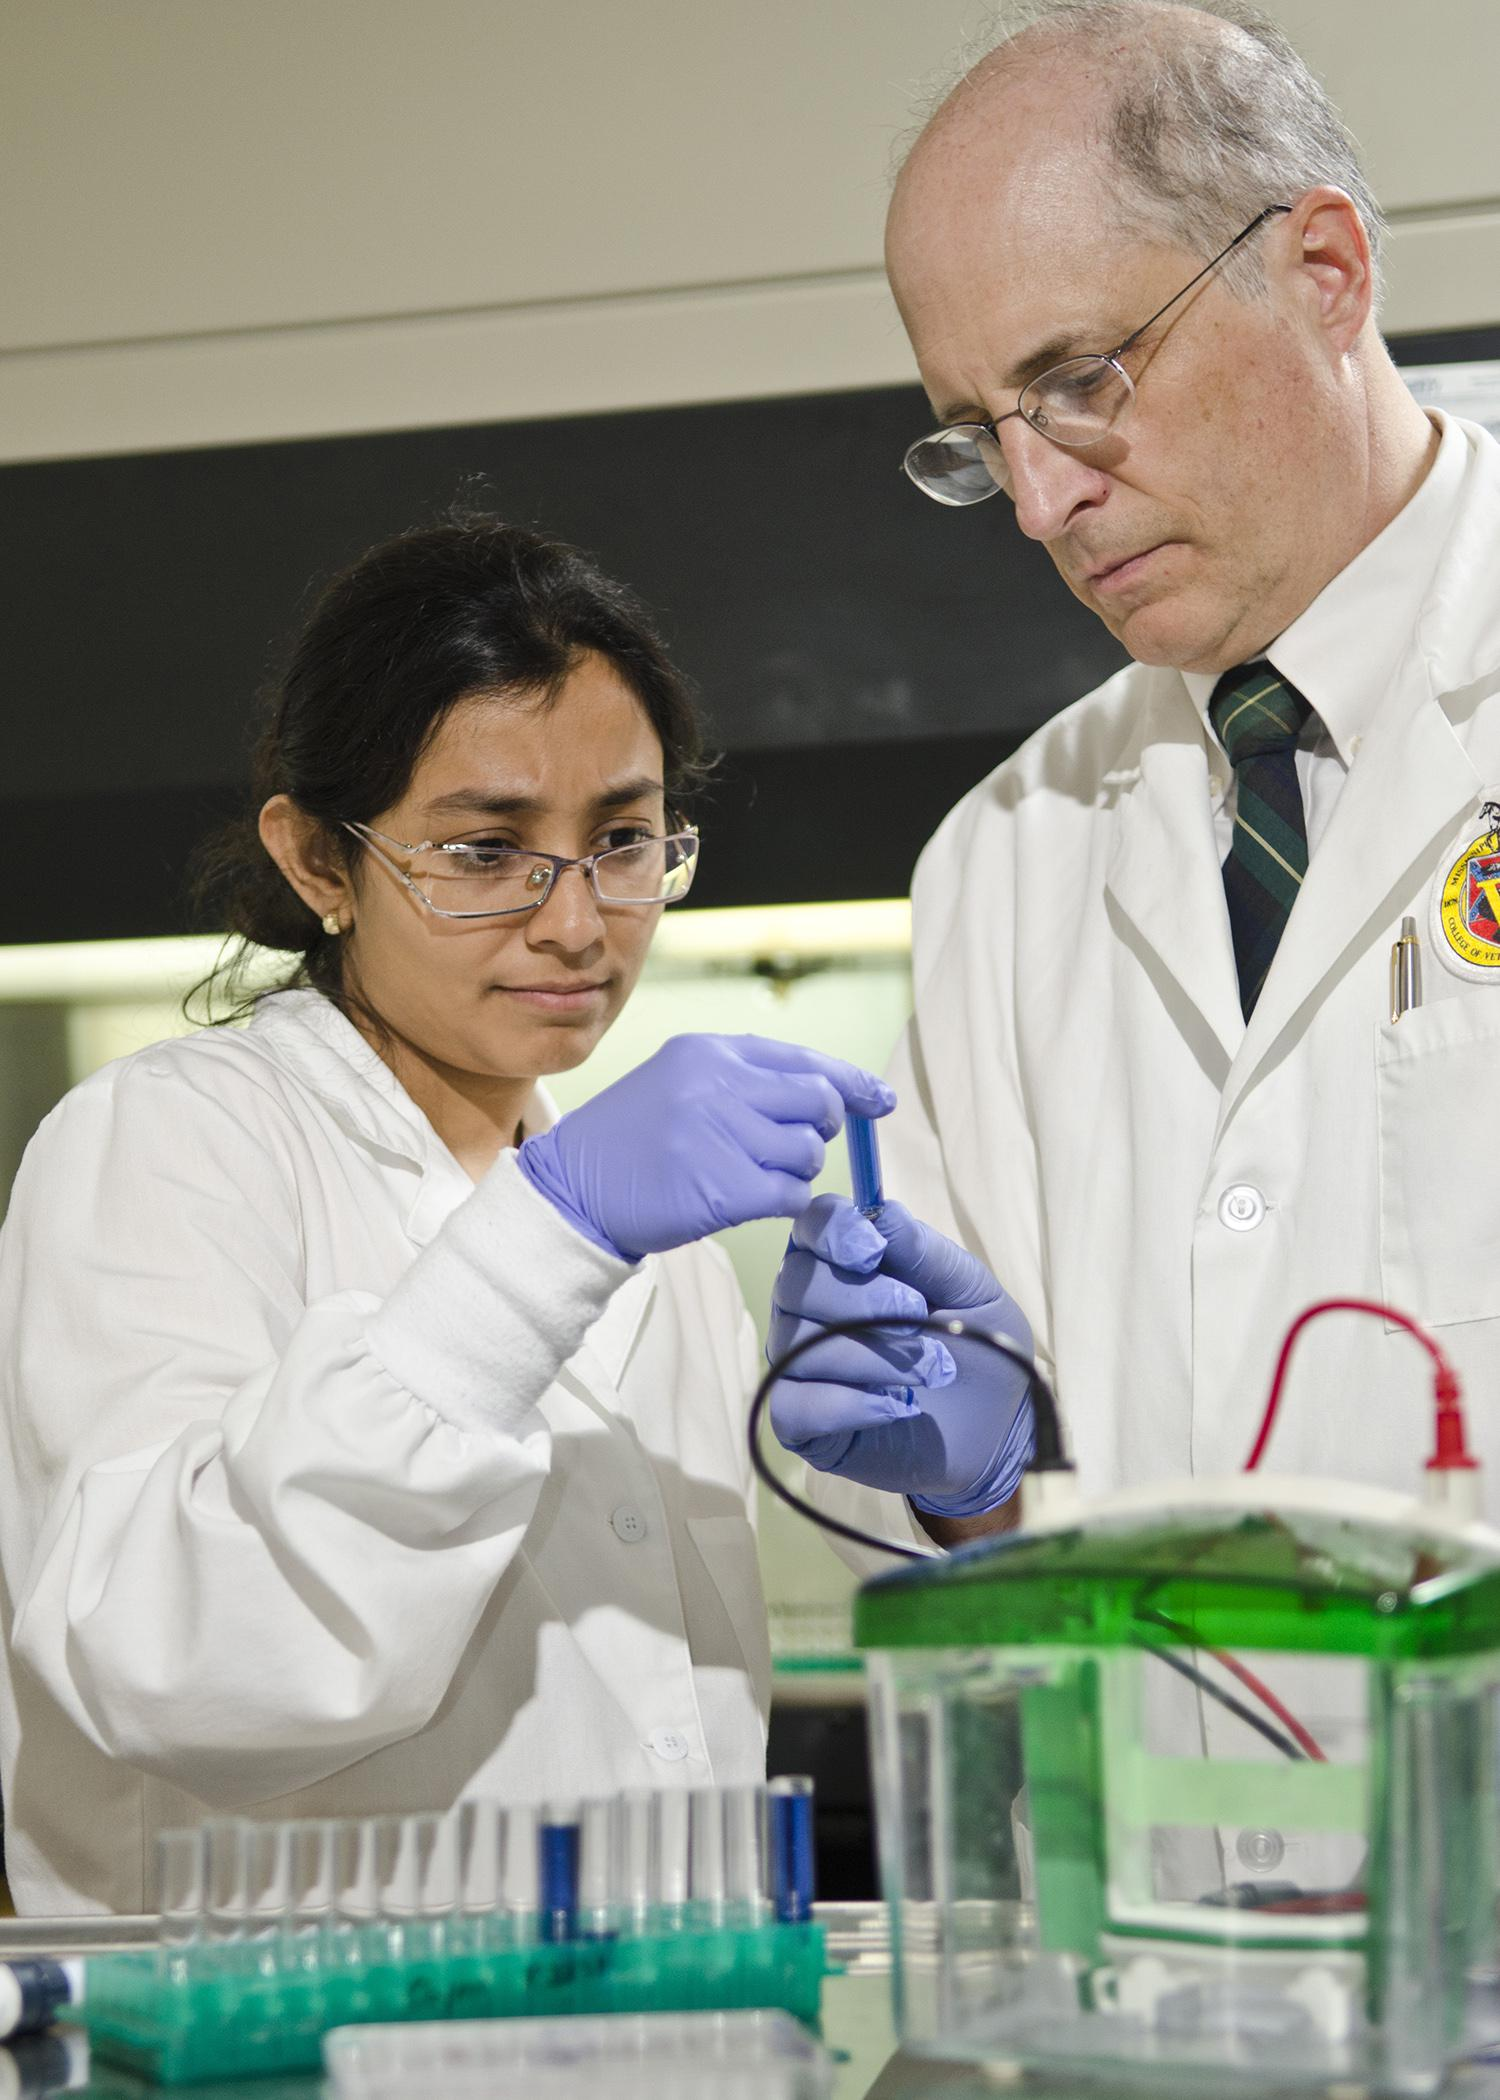 At the Mississippi State University College of Veterinary Medicine, Lakshmi Narayana, a postdoctoral associate, and Dr. Cody Coyne, a professor of molecular pharmacology and immunology, research cancer therapies that target specific cells. (Photo by MSU College of Veterinary Medicine/Tom Thompson)